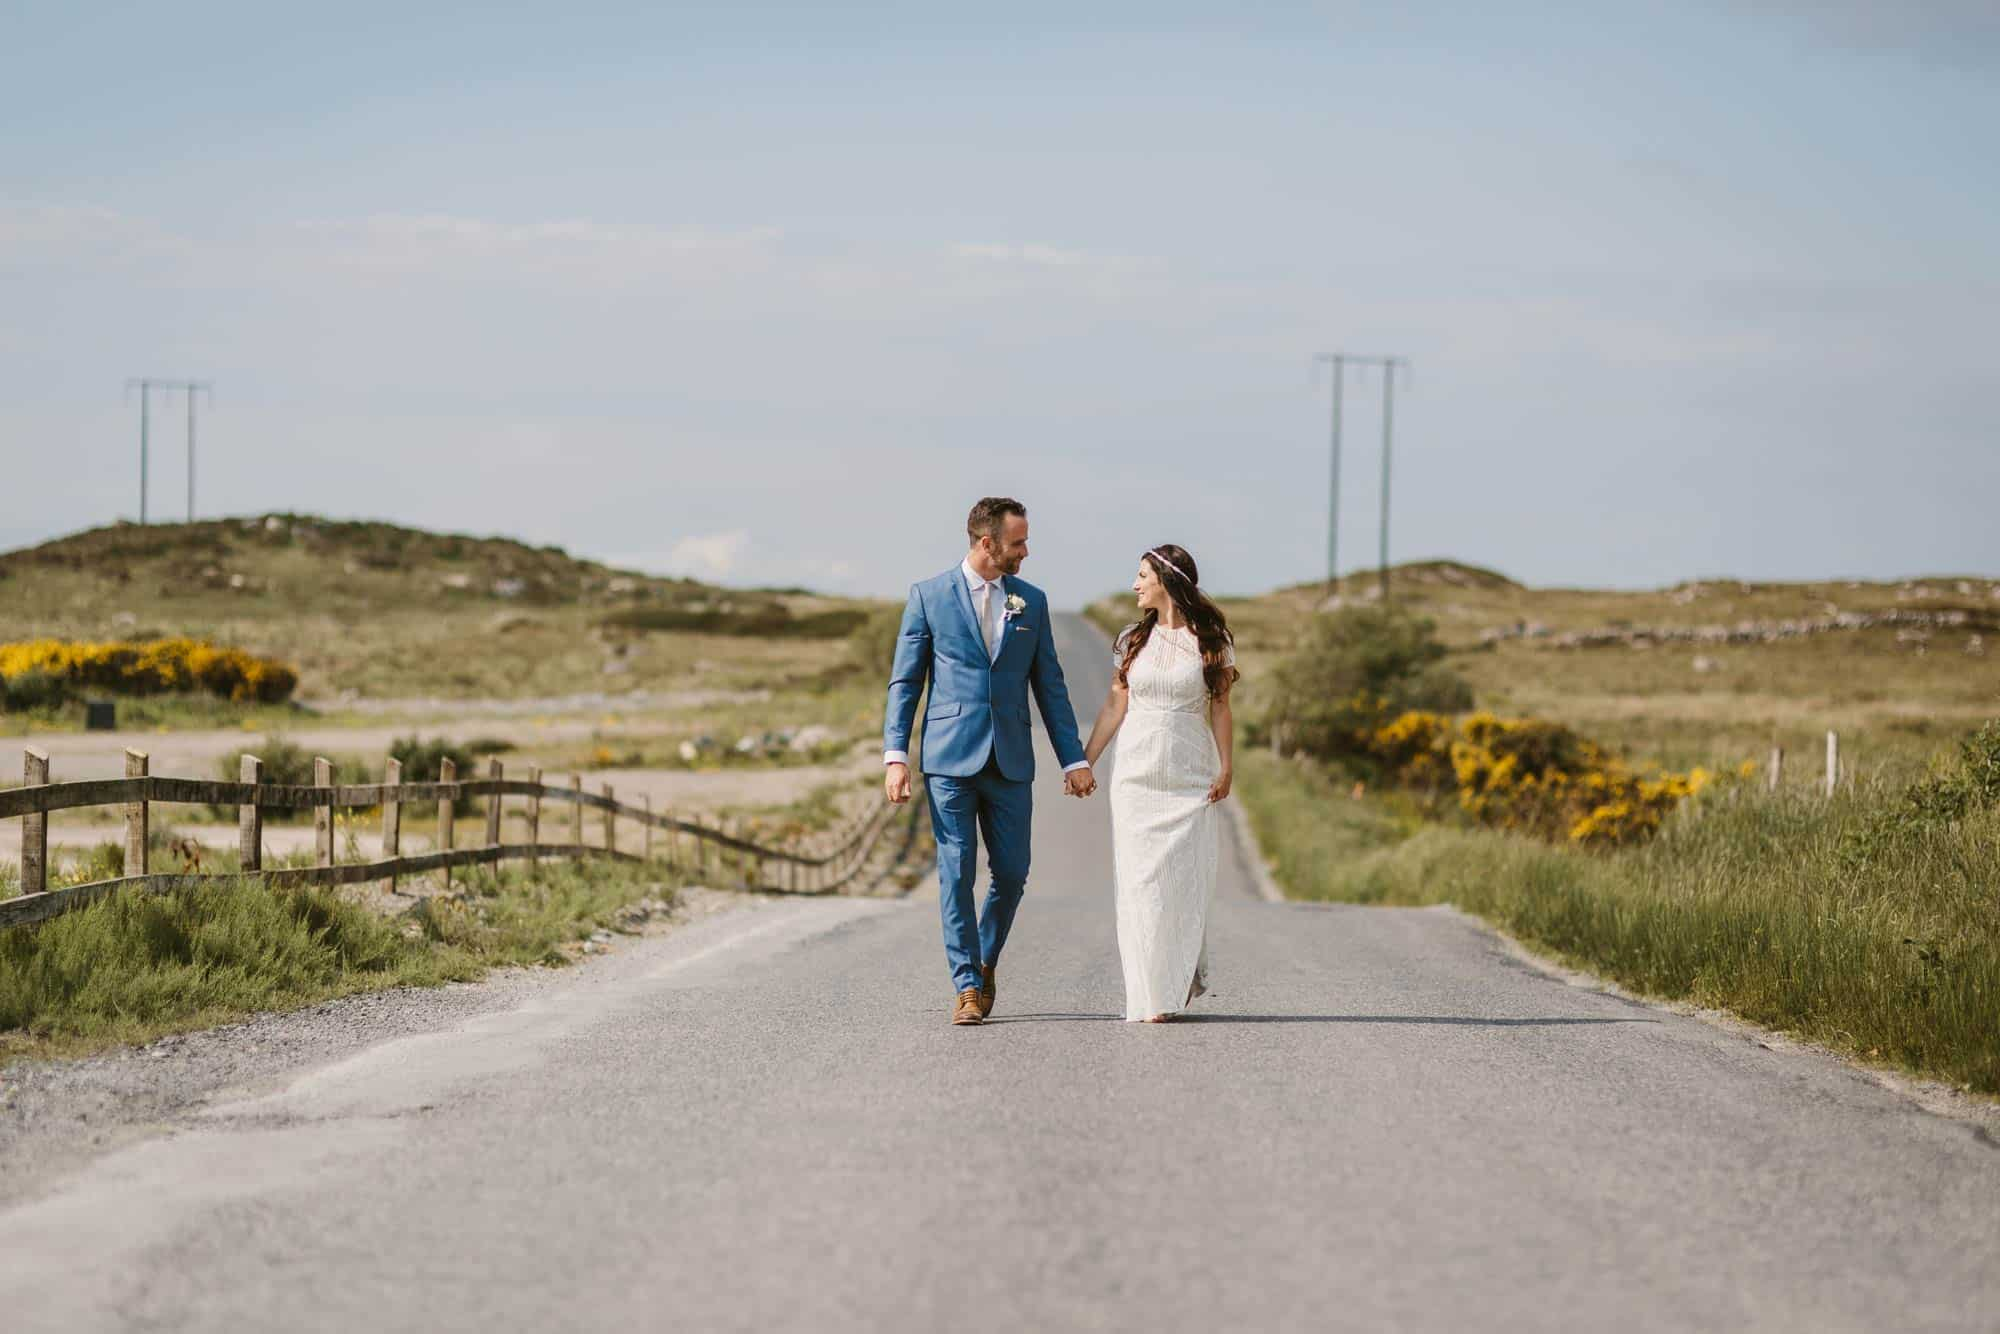 Elopement videographer Ireland, couple walk on a road